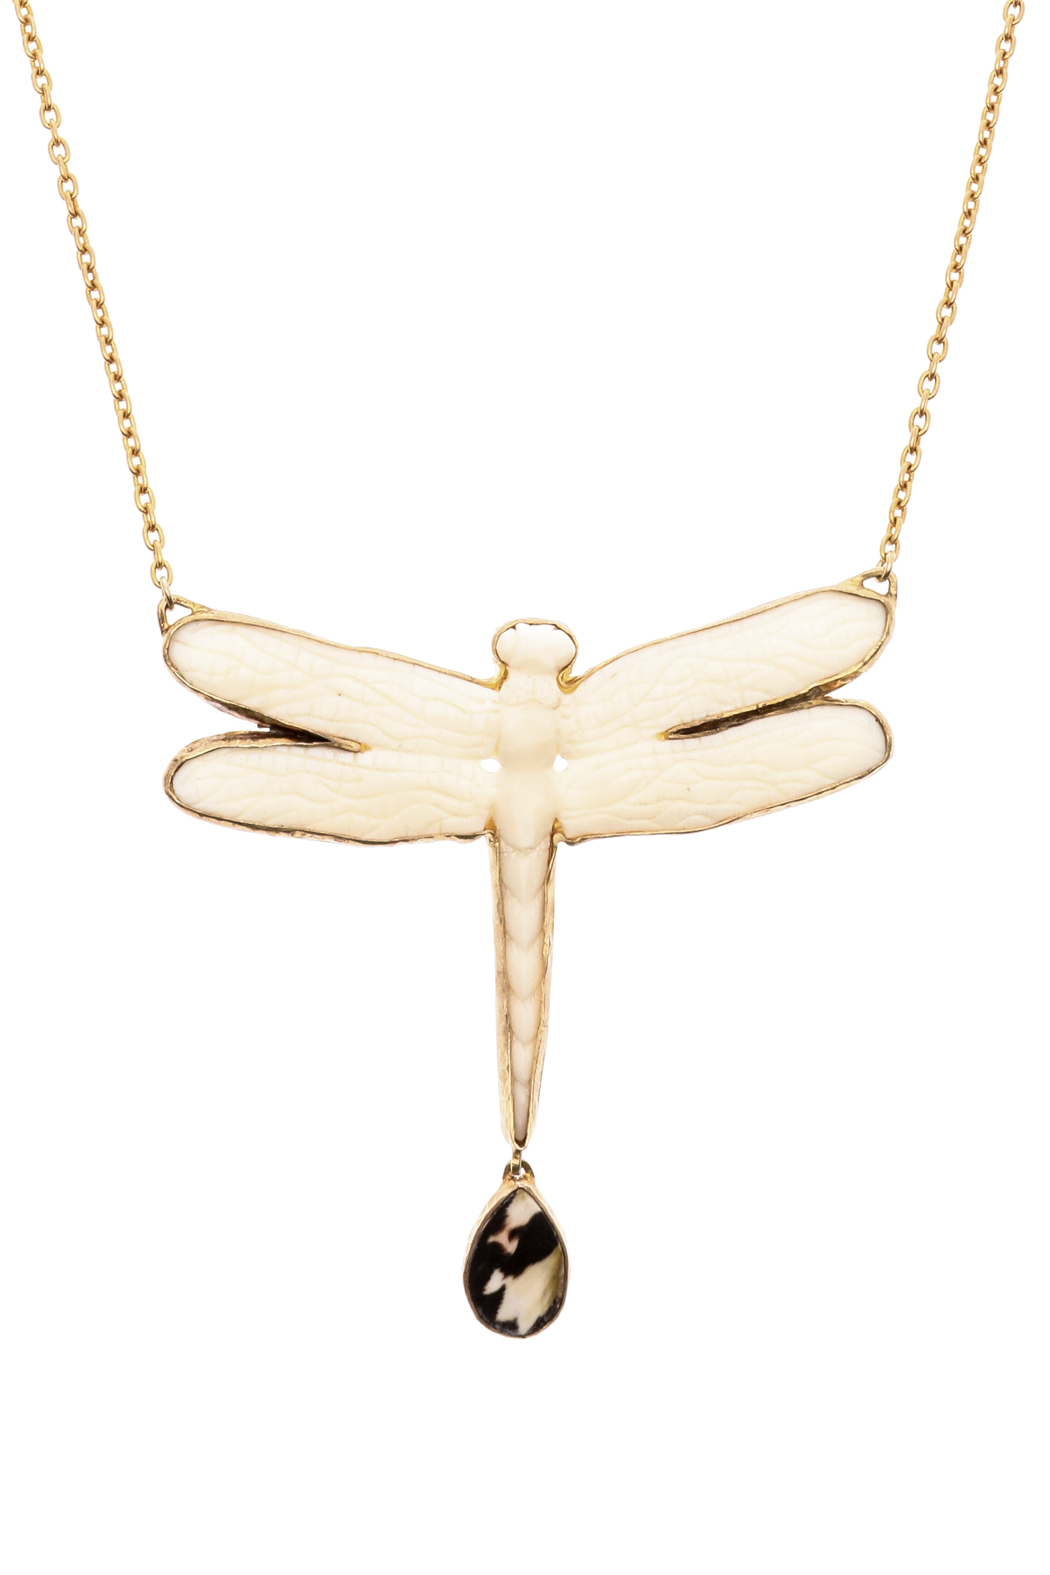 Heather Benjamin Bone Dragon Fly Necklace - Front Full Image